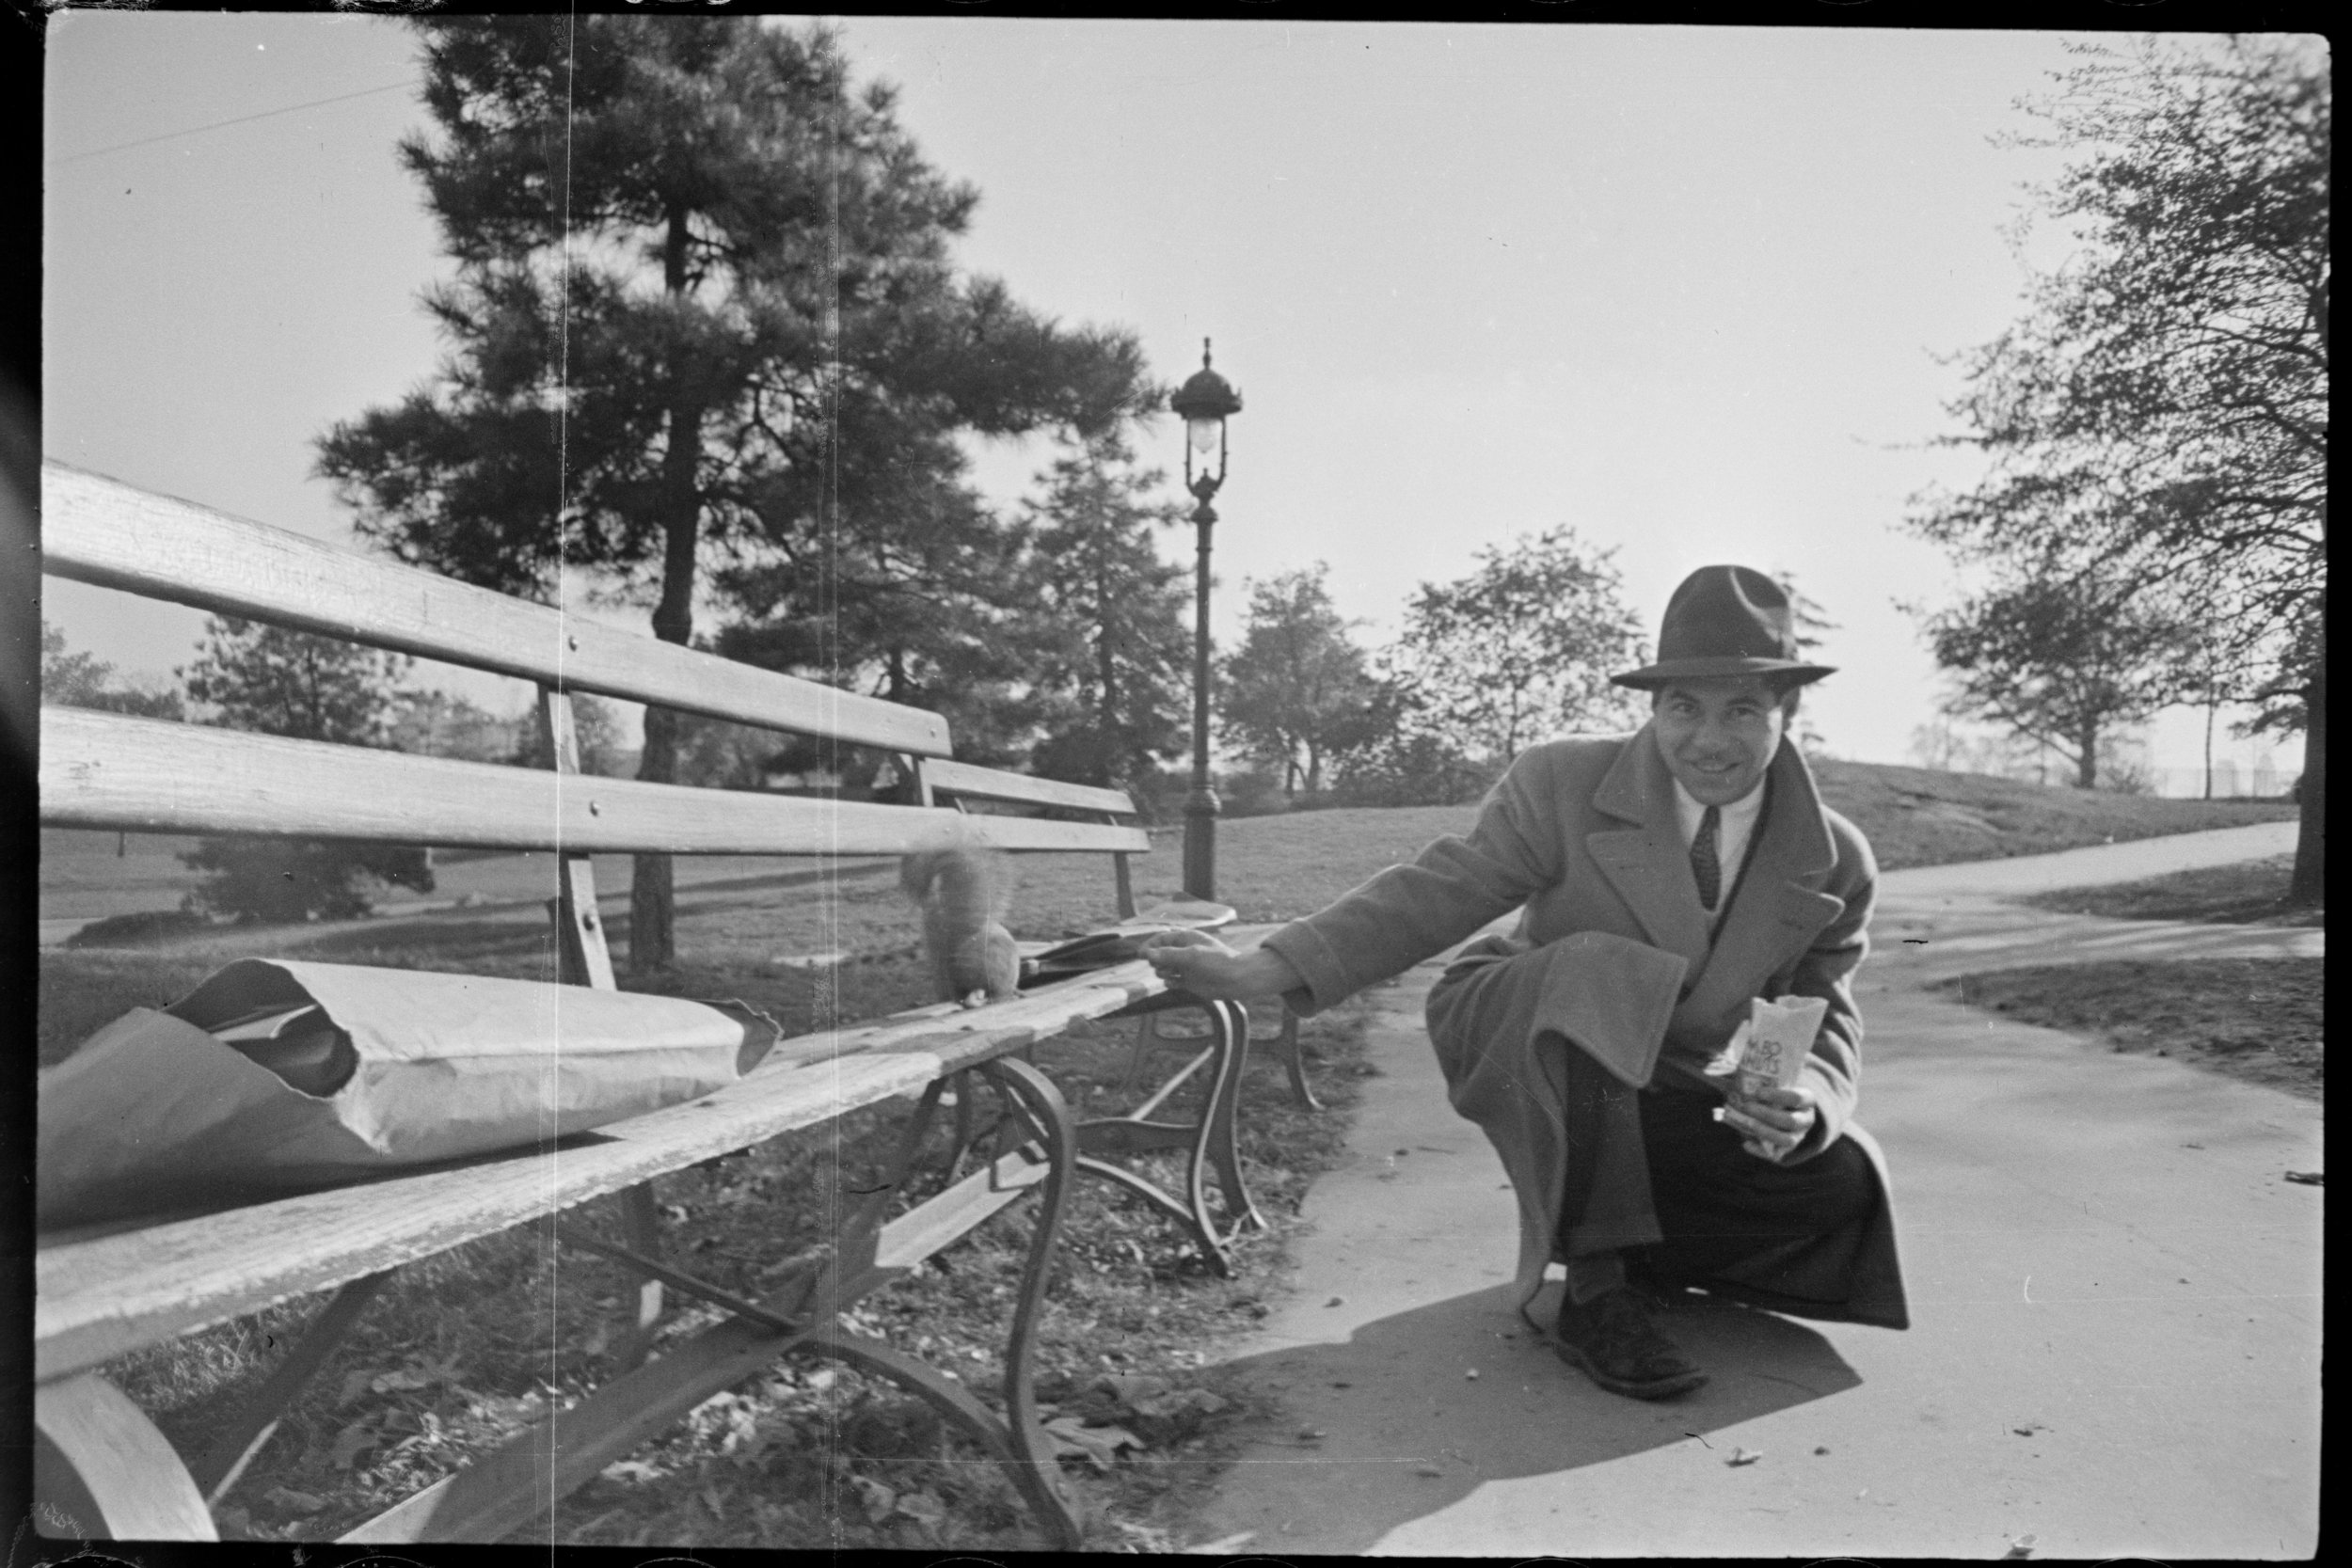 A Tax Department clerk feeding a squirrel in Central Park, ca. 1940.